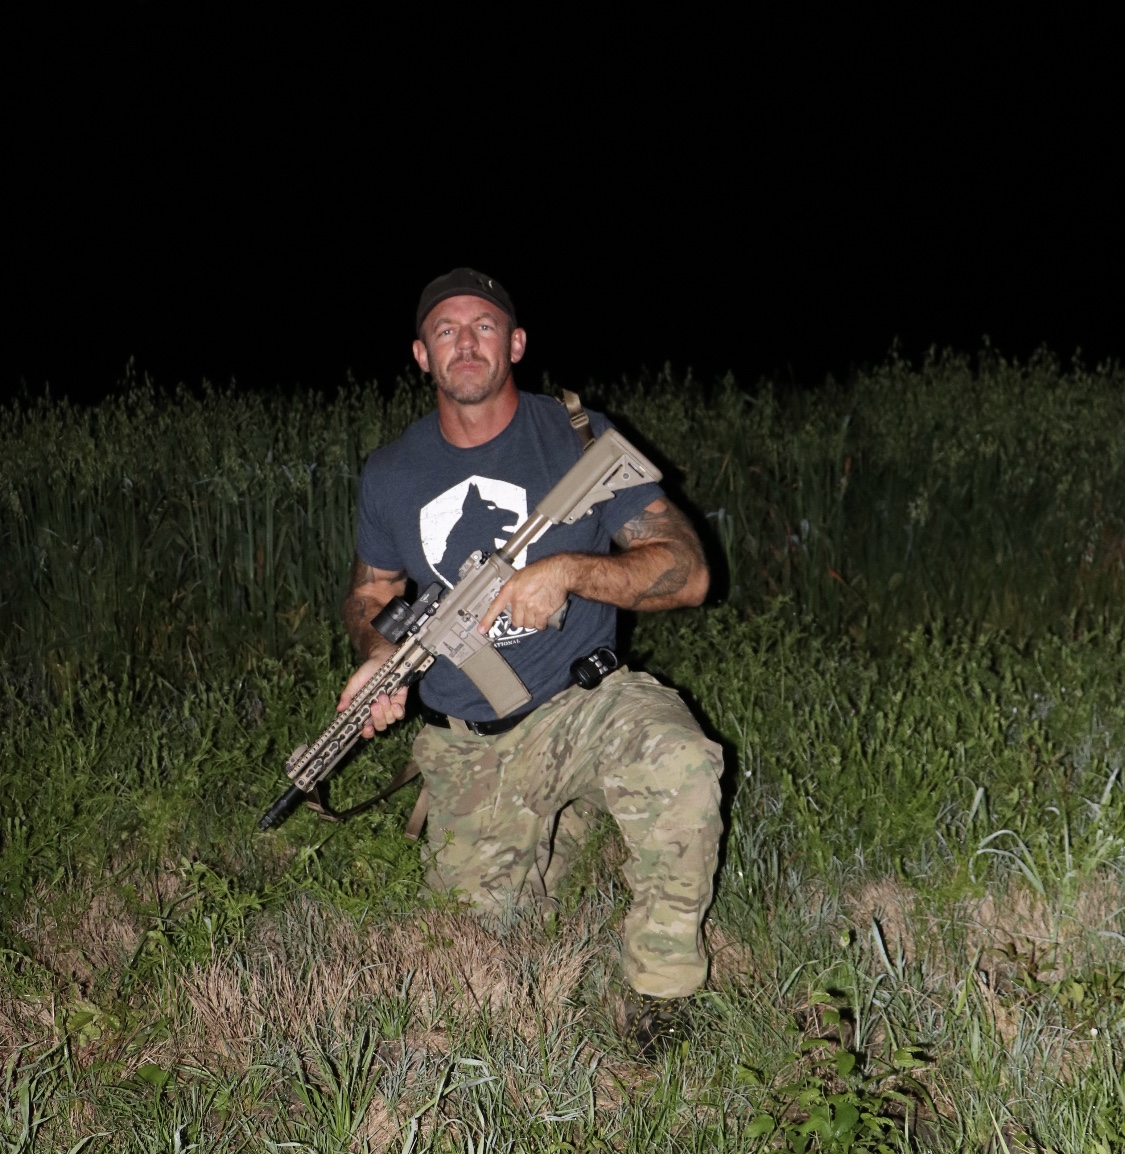 mike ritland with rifle in field at night